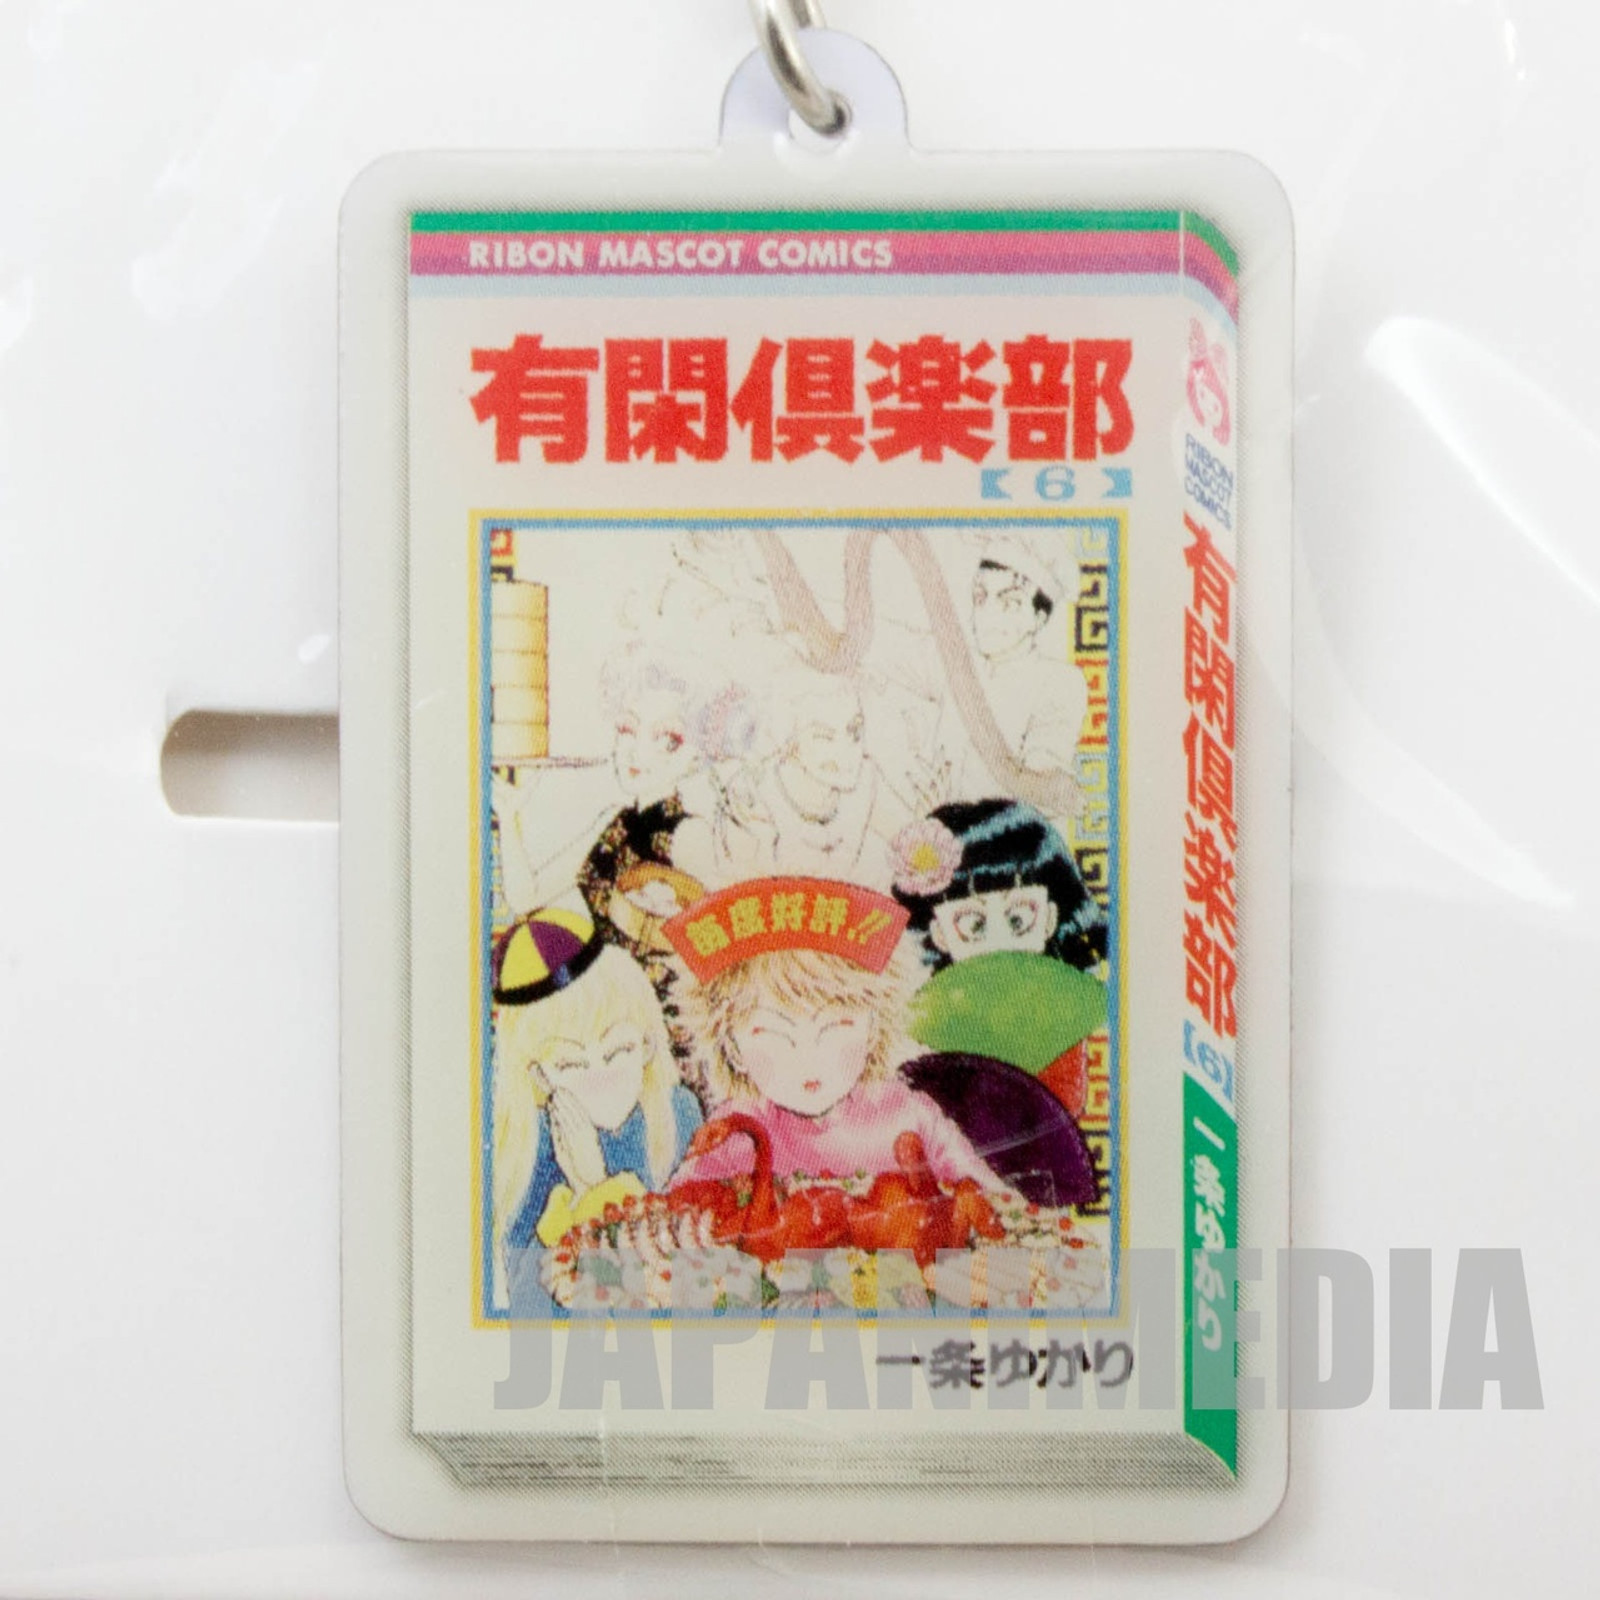 Yukan Club Vol.6 Manga Comics Type Metal Charm Strap JAPAN